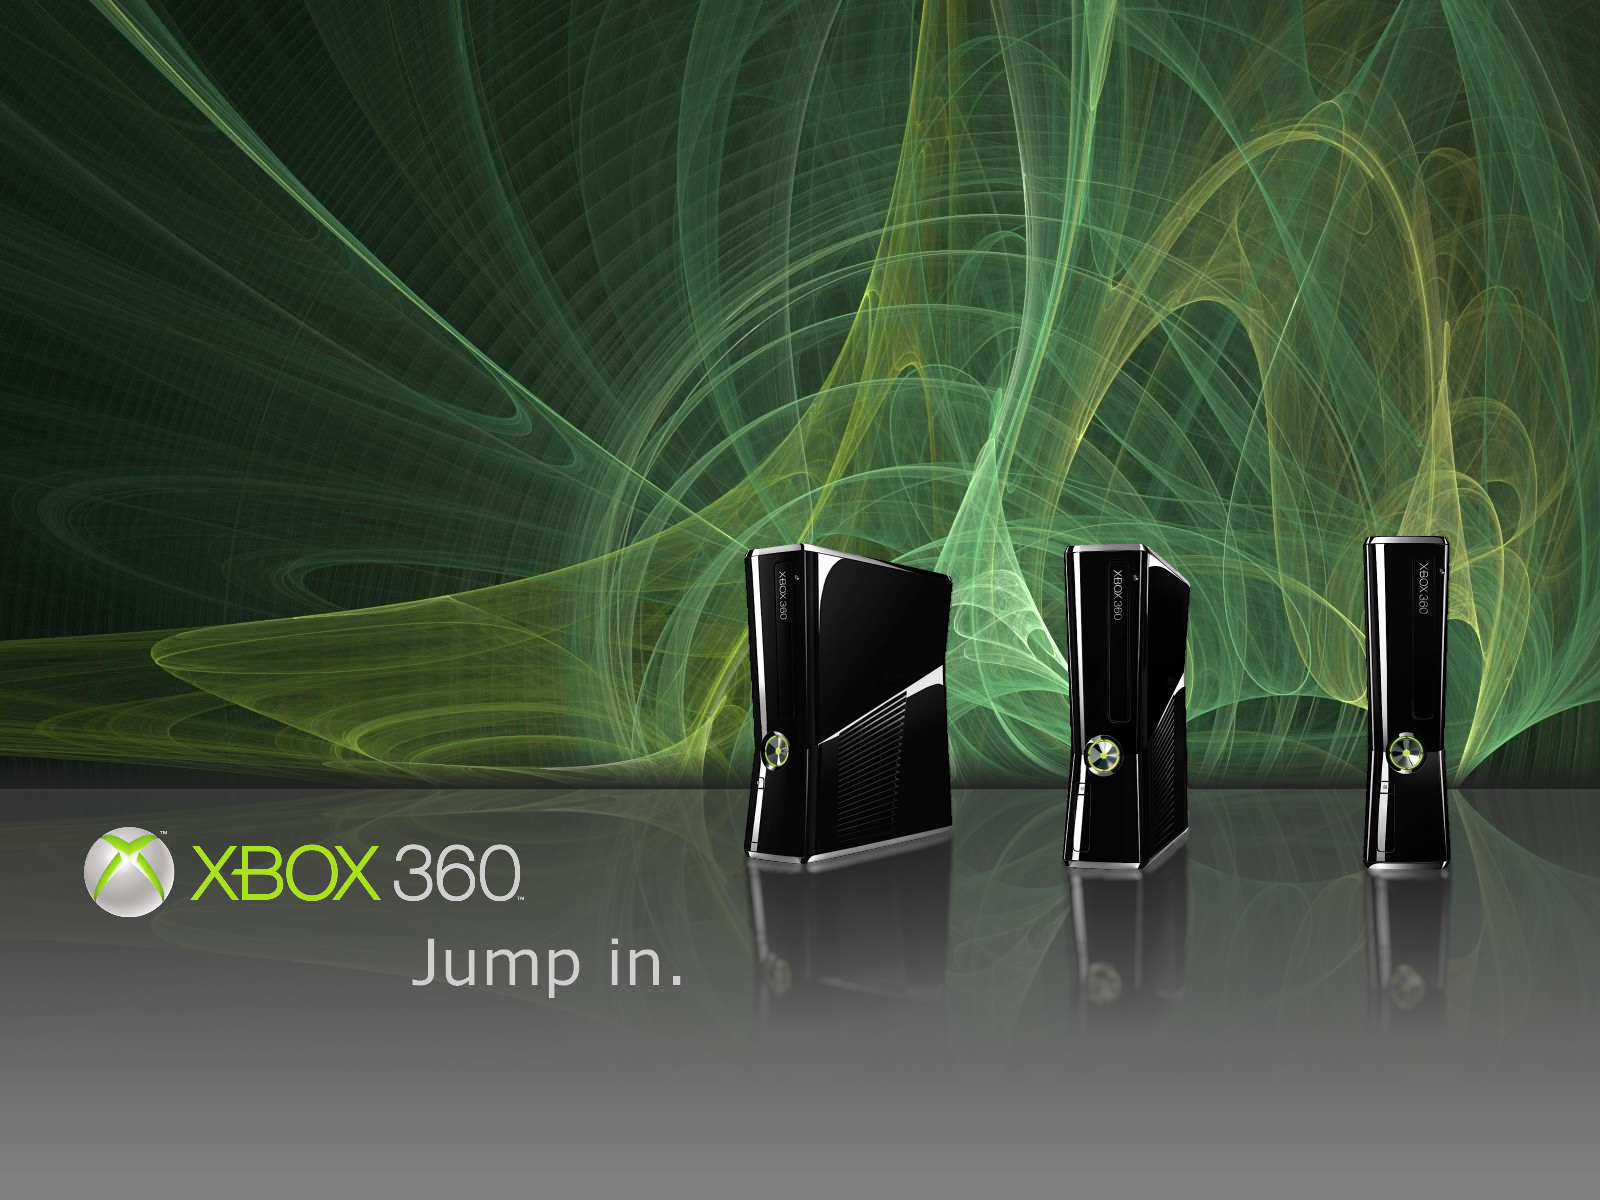 123k xbox 360 wallpaper about me xbox 360 wallpaper for 1600x1200